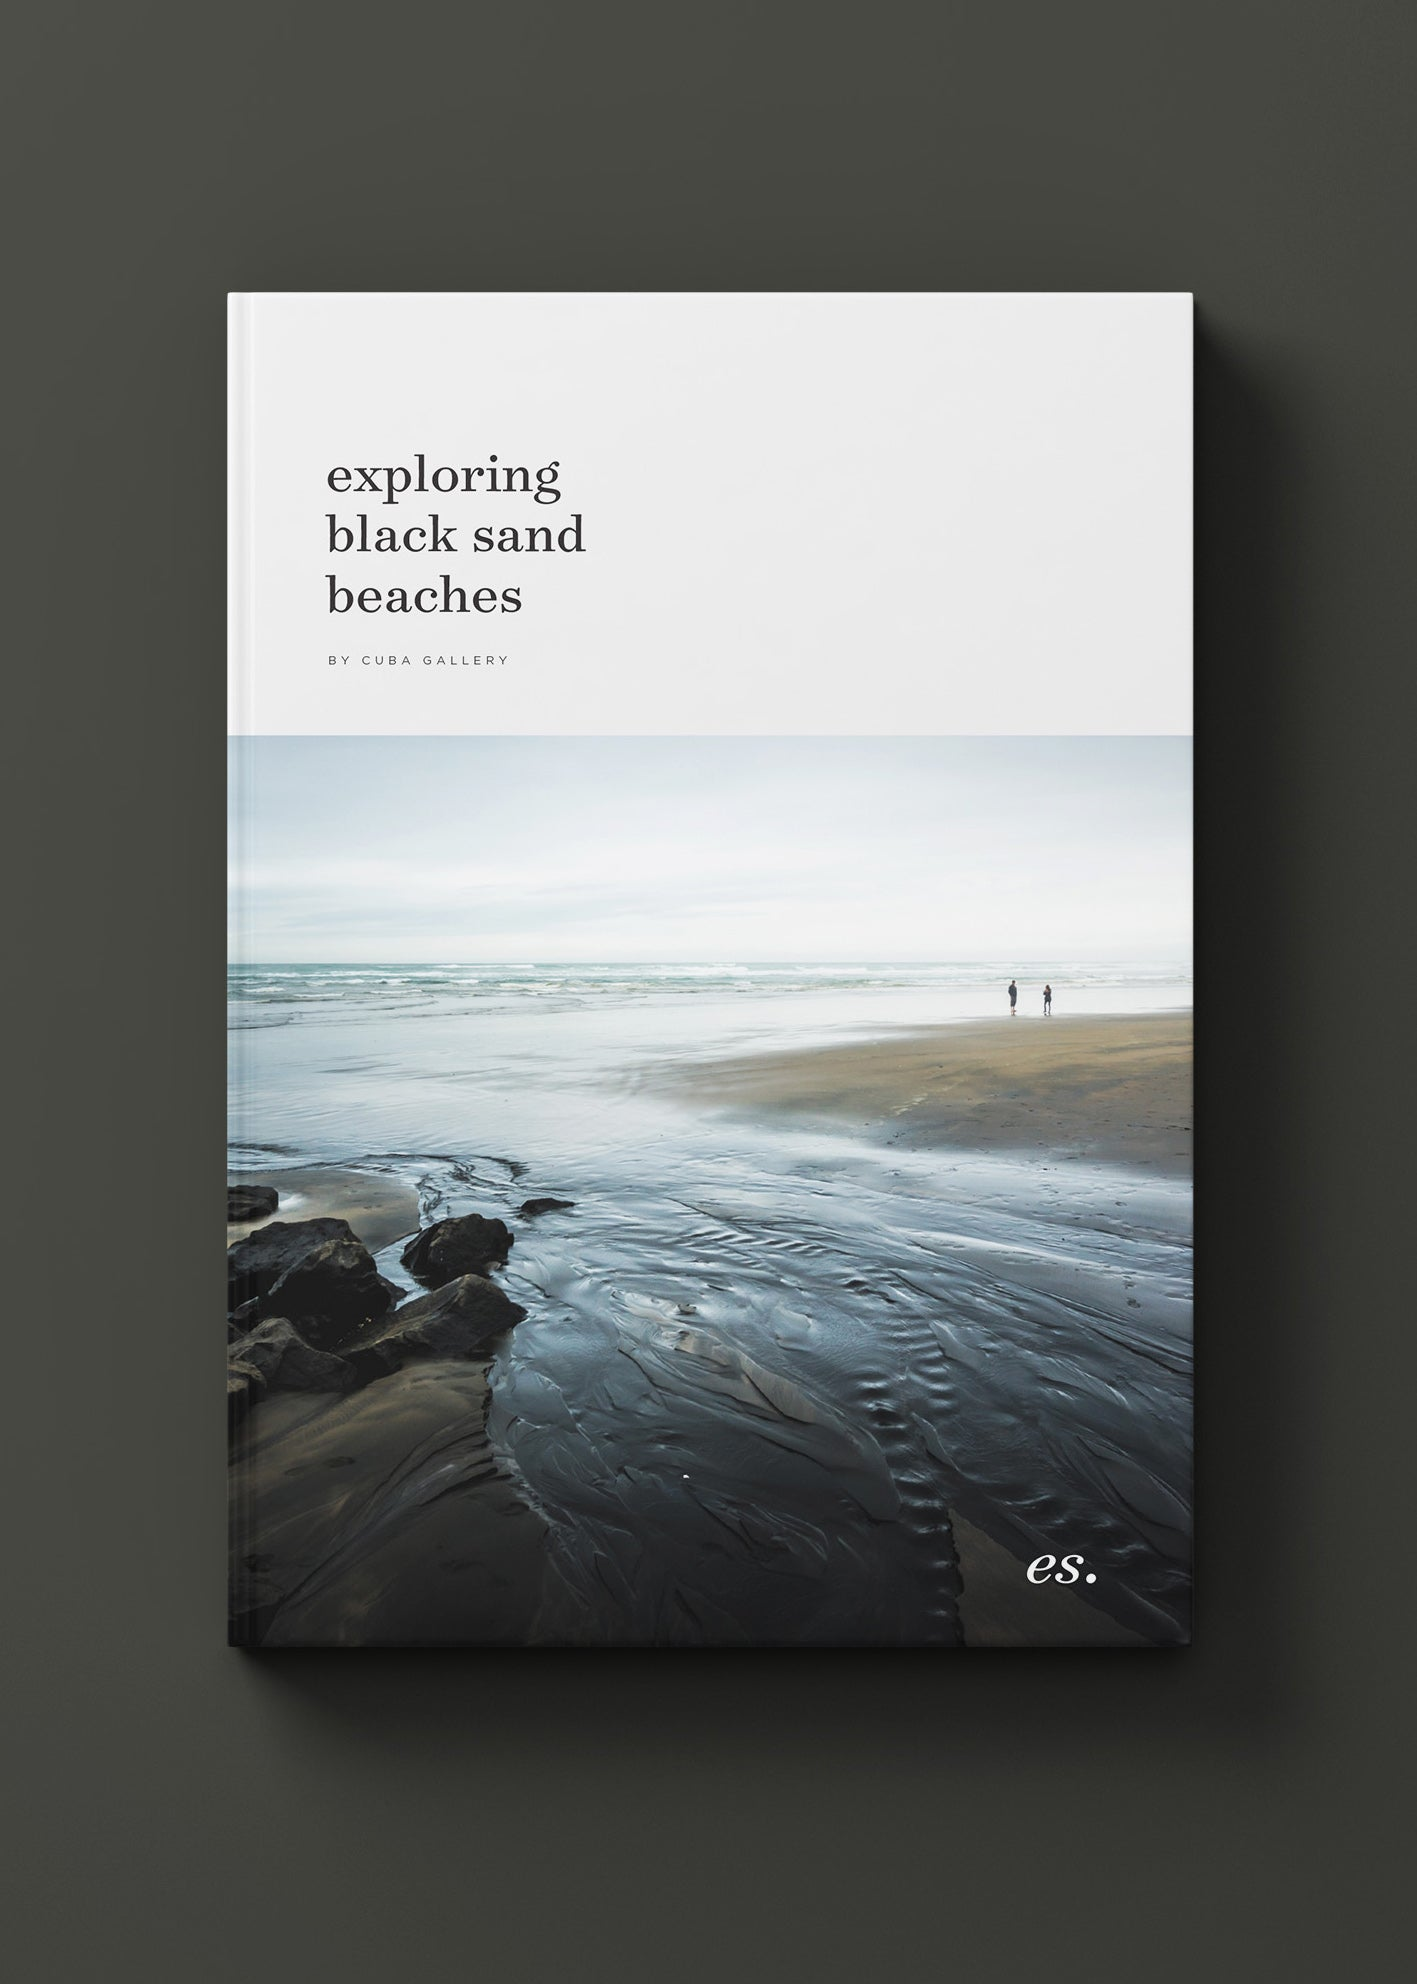 Cover Design for Black Sands